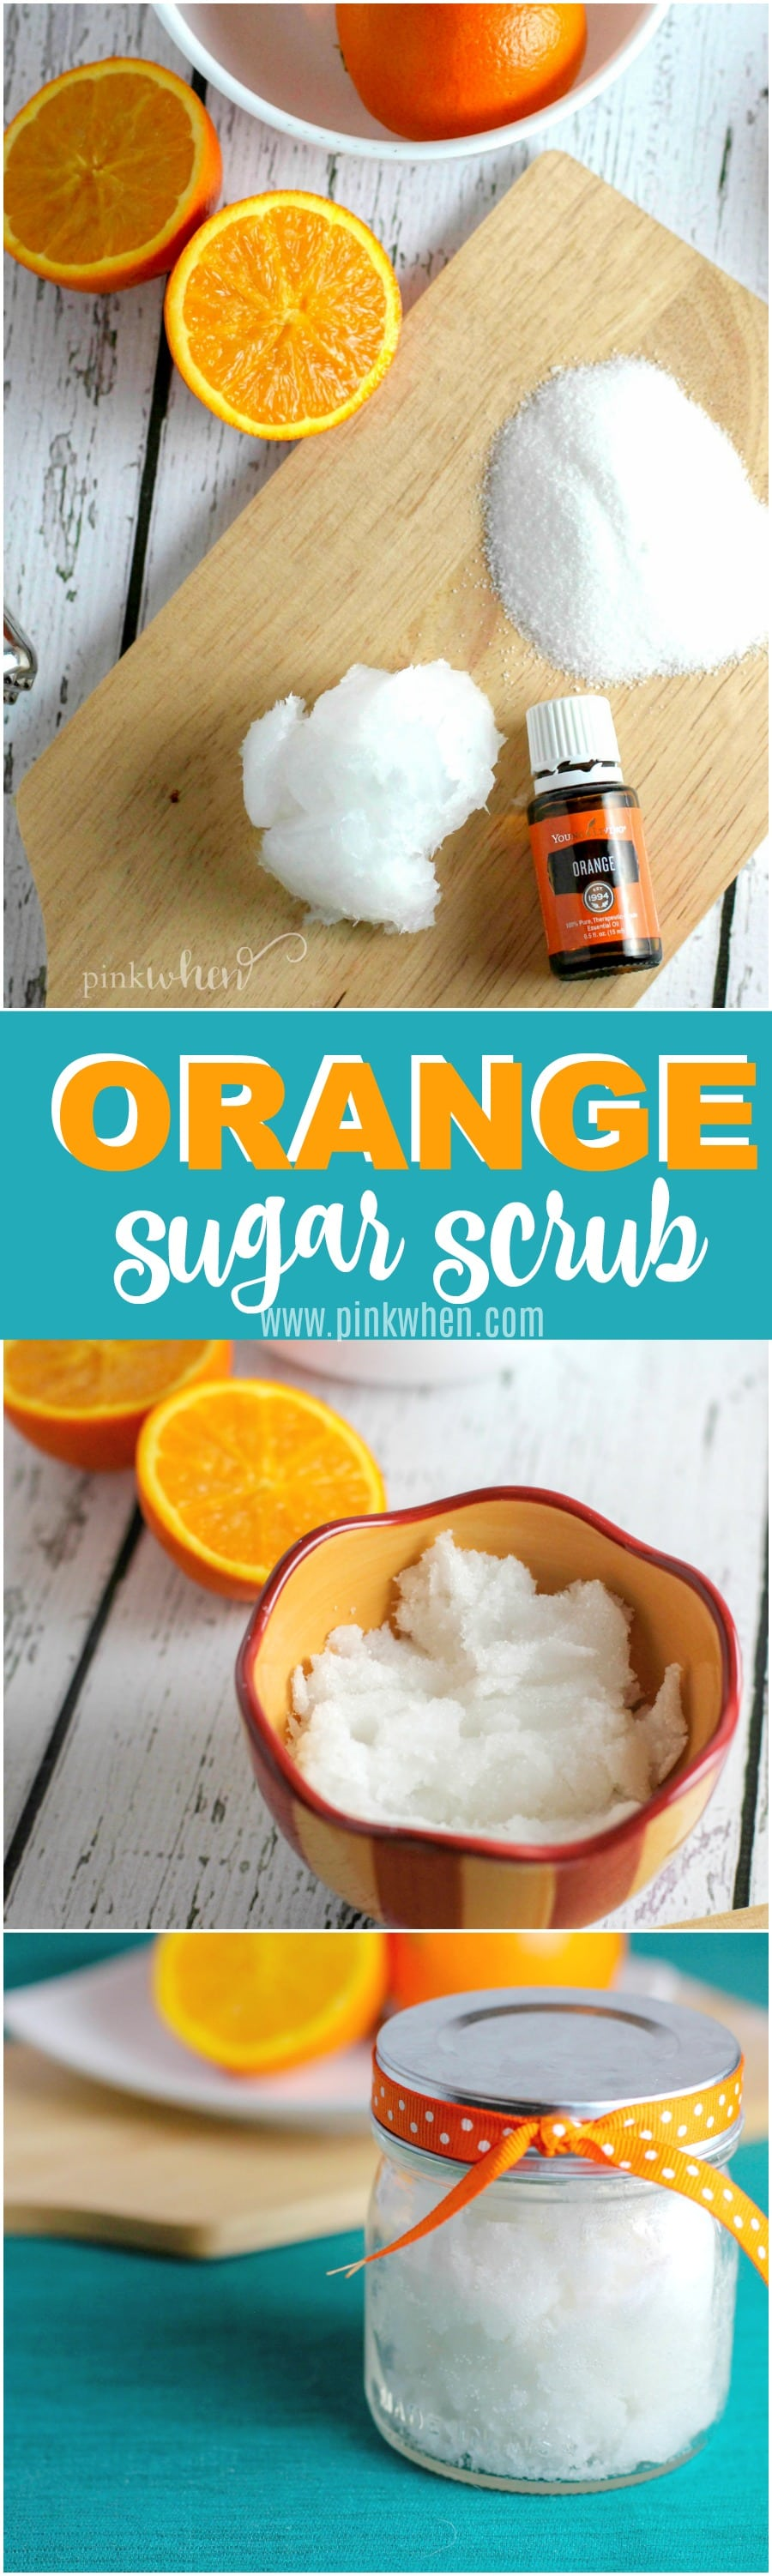 Orange and Coconut Sugar Scrub Recipe - Get ready for bright, healthy, and oh so soft skin!